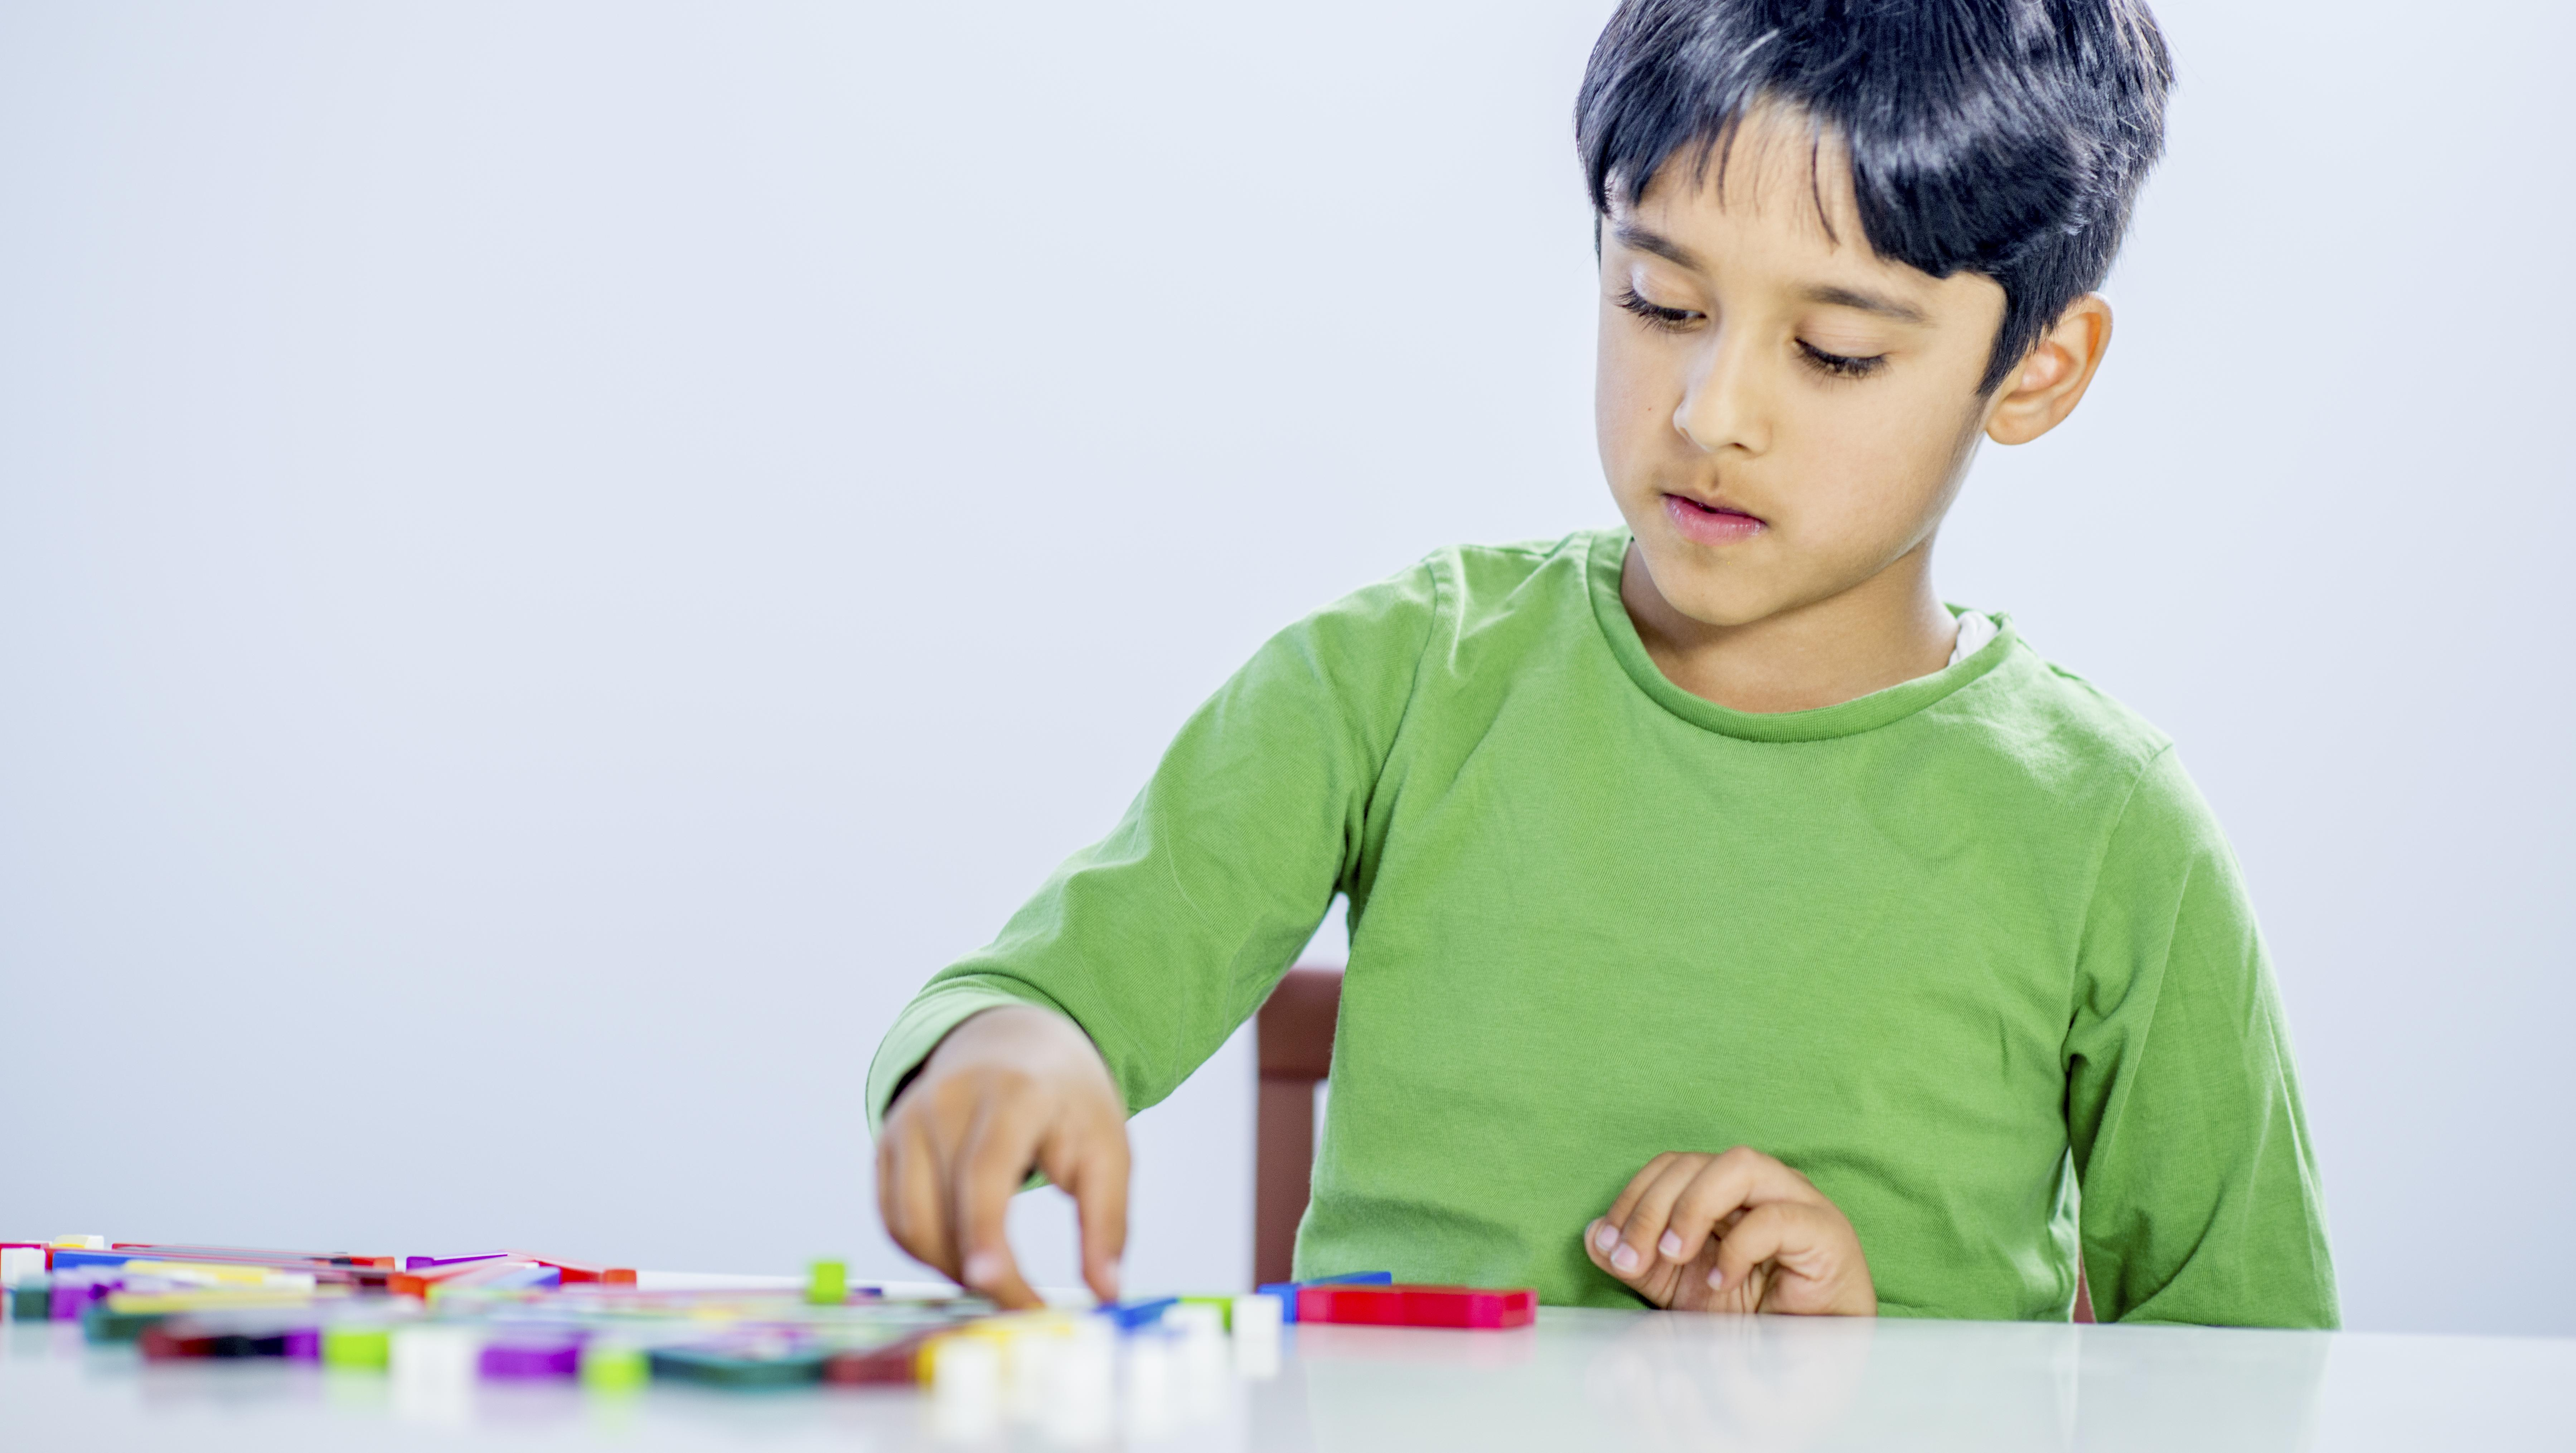 What is your child's learning style?